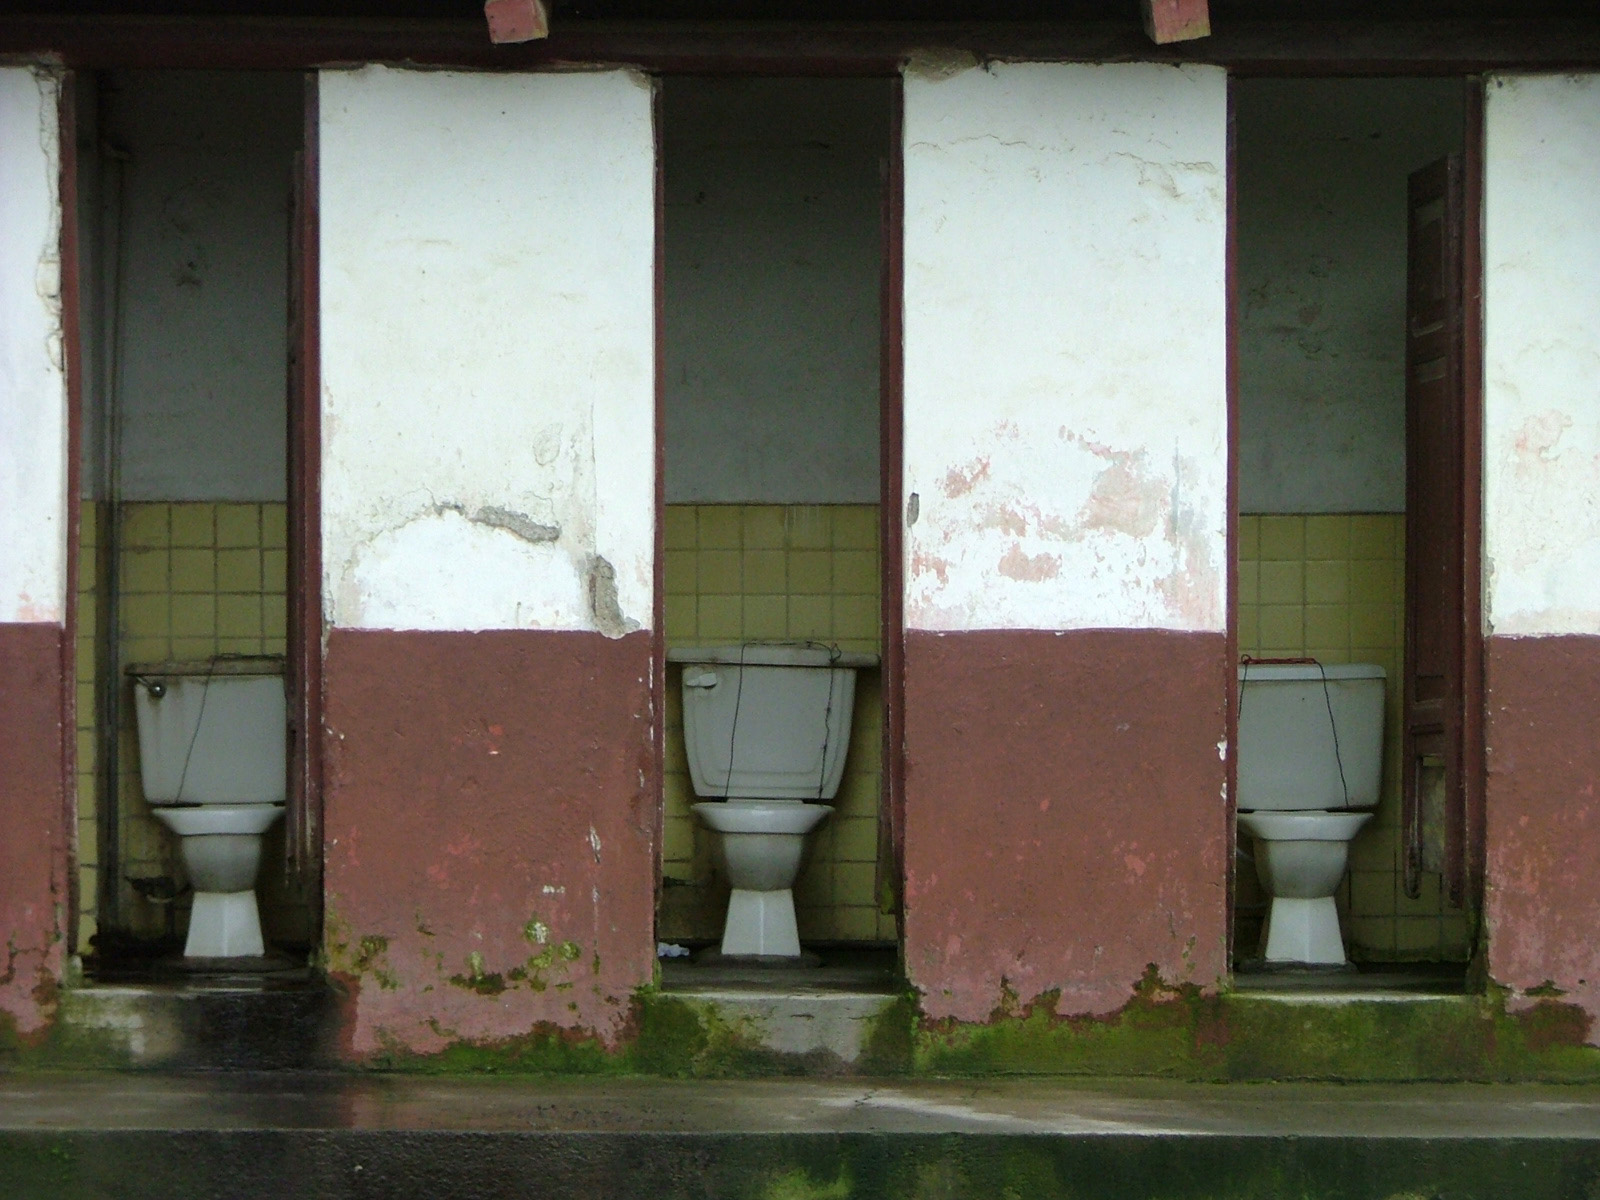 Roadside toilet in Ecuador - Photo by Crissie Hardy